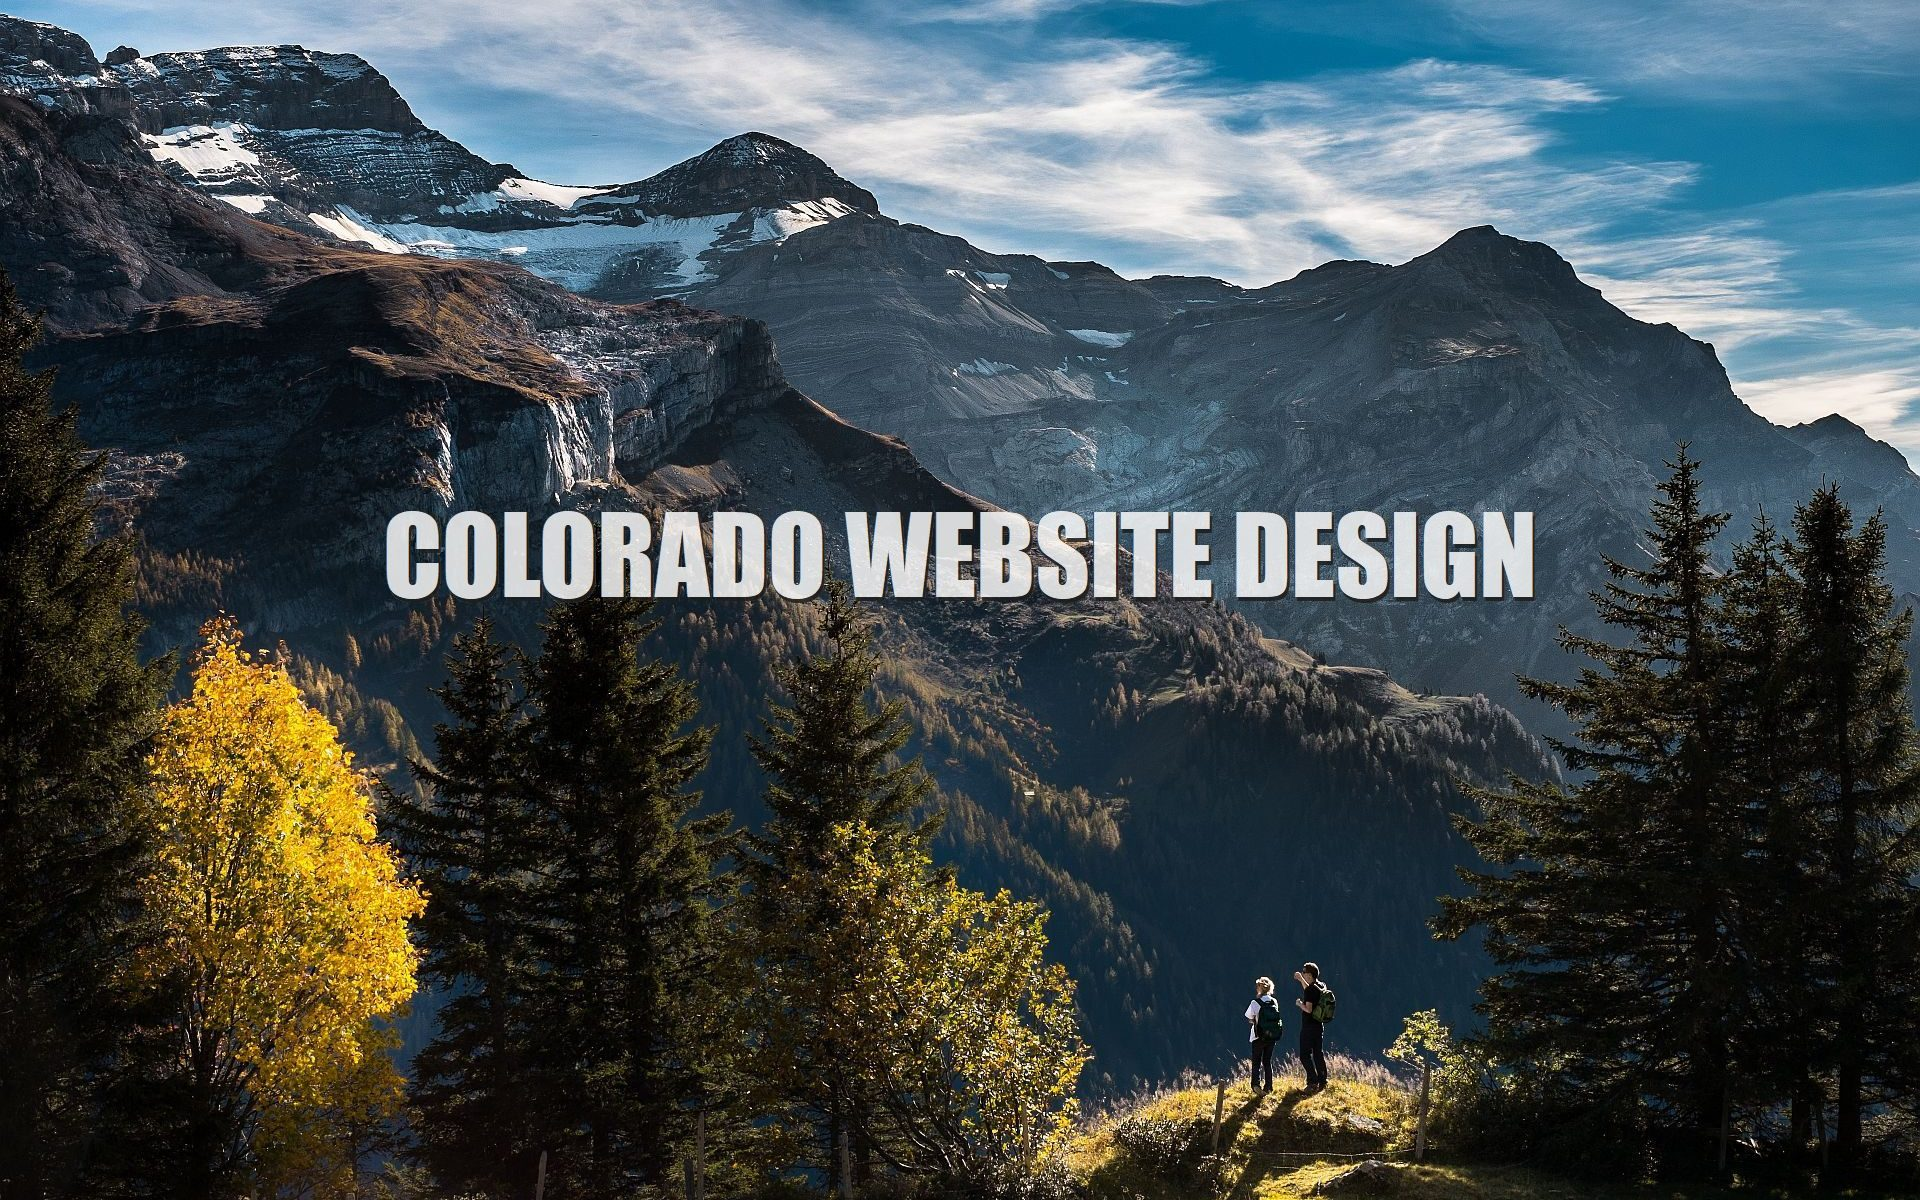 custom-website-designer-hosting-low-cost-fast-service-high-quality-durango-bayfield-telluride-pagosa-springs-co-boulder-aspen-denver-1920